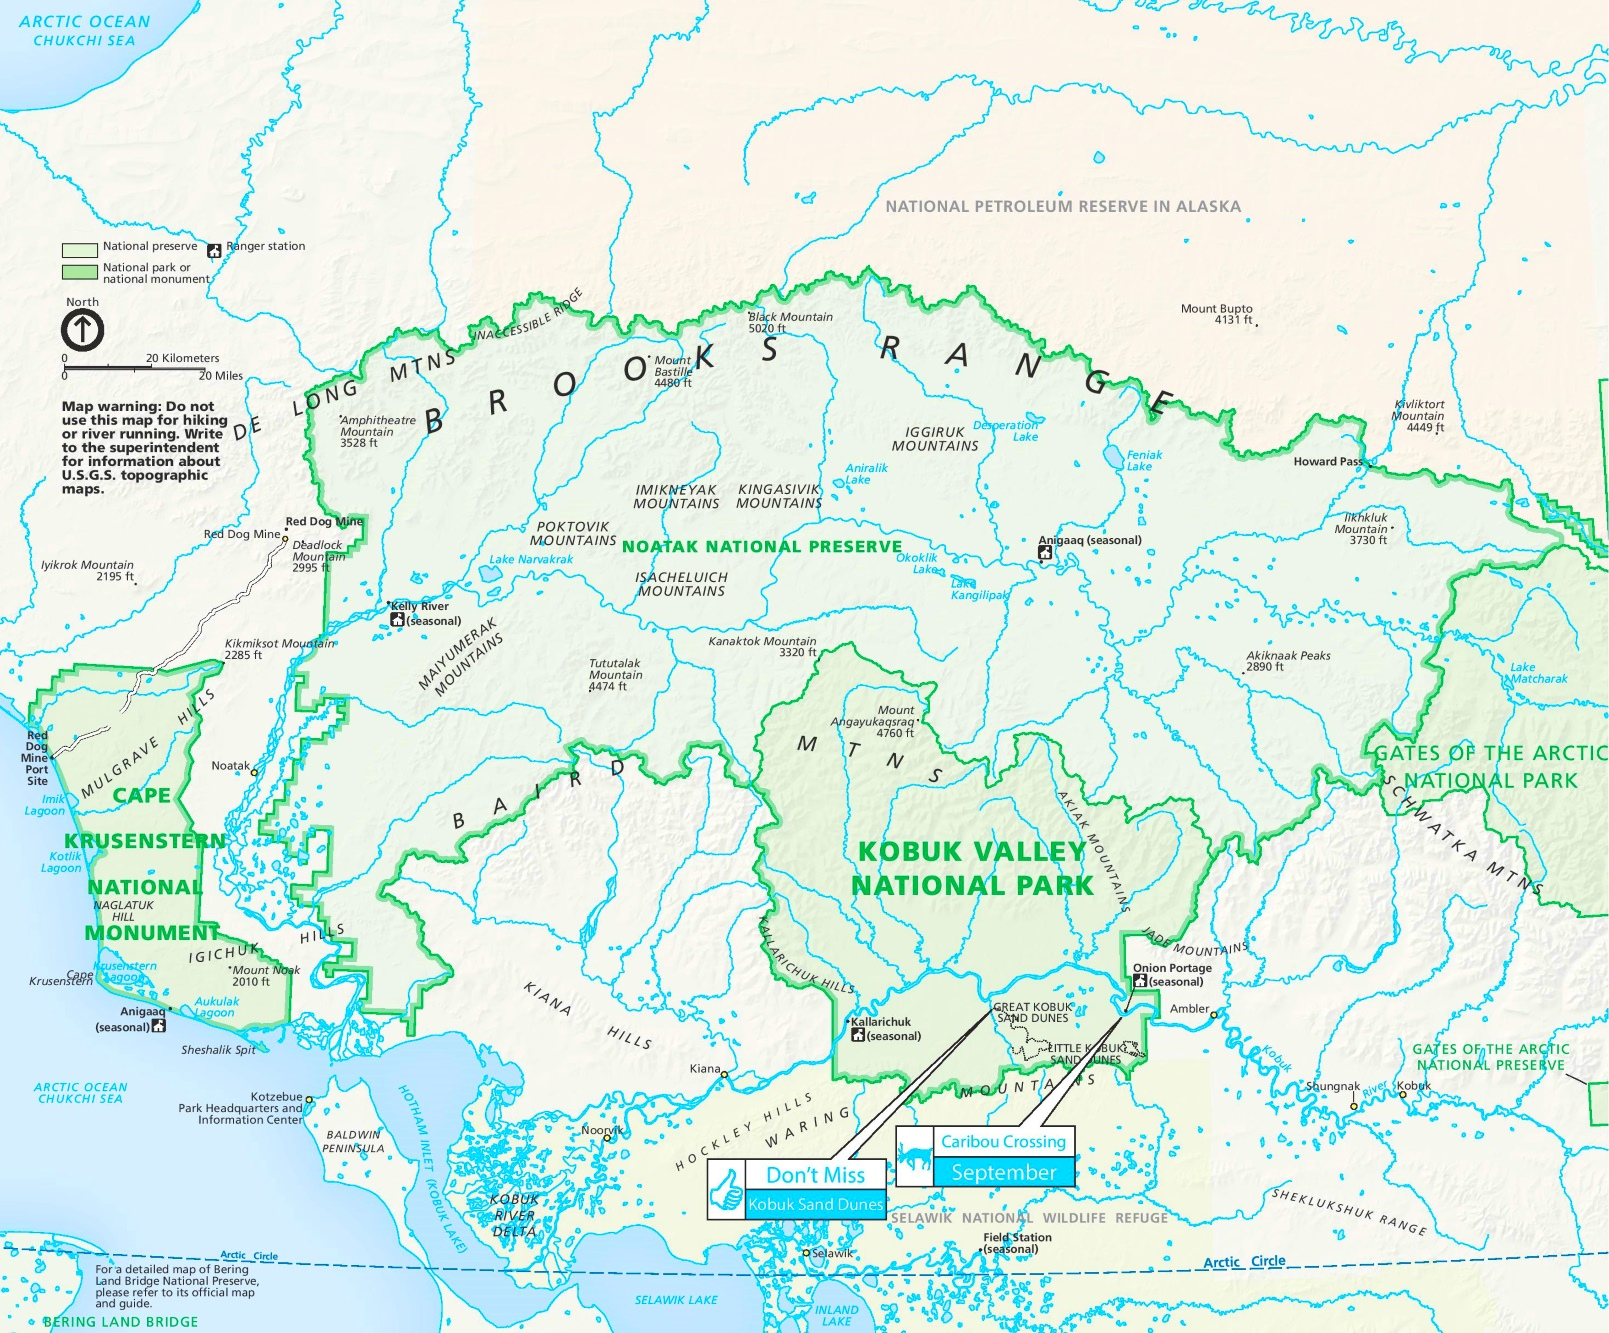 Kobuk Valley National Park tourist map